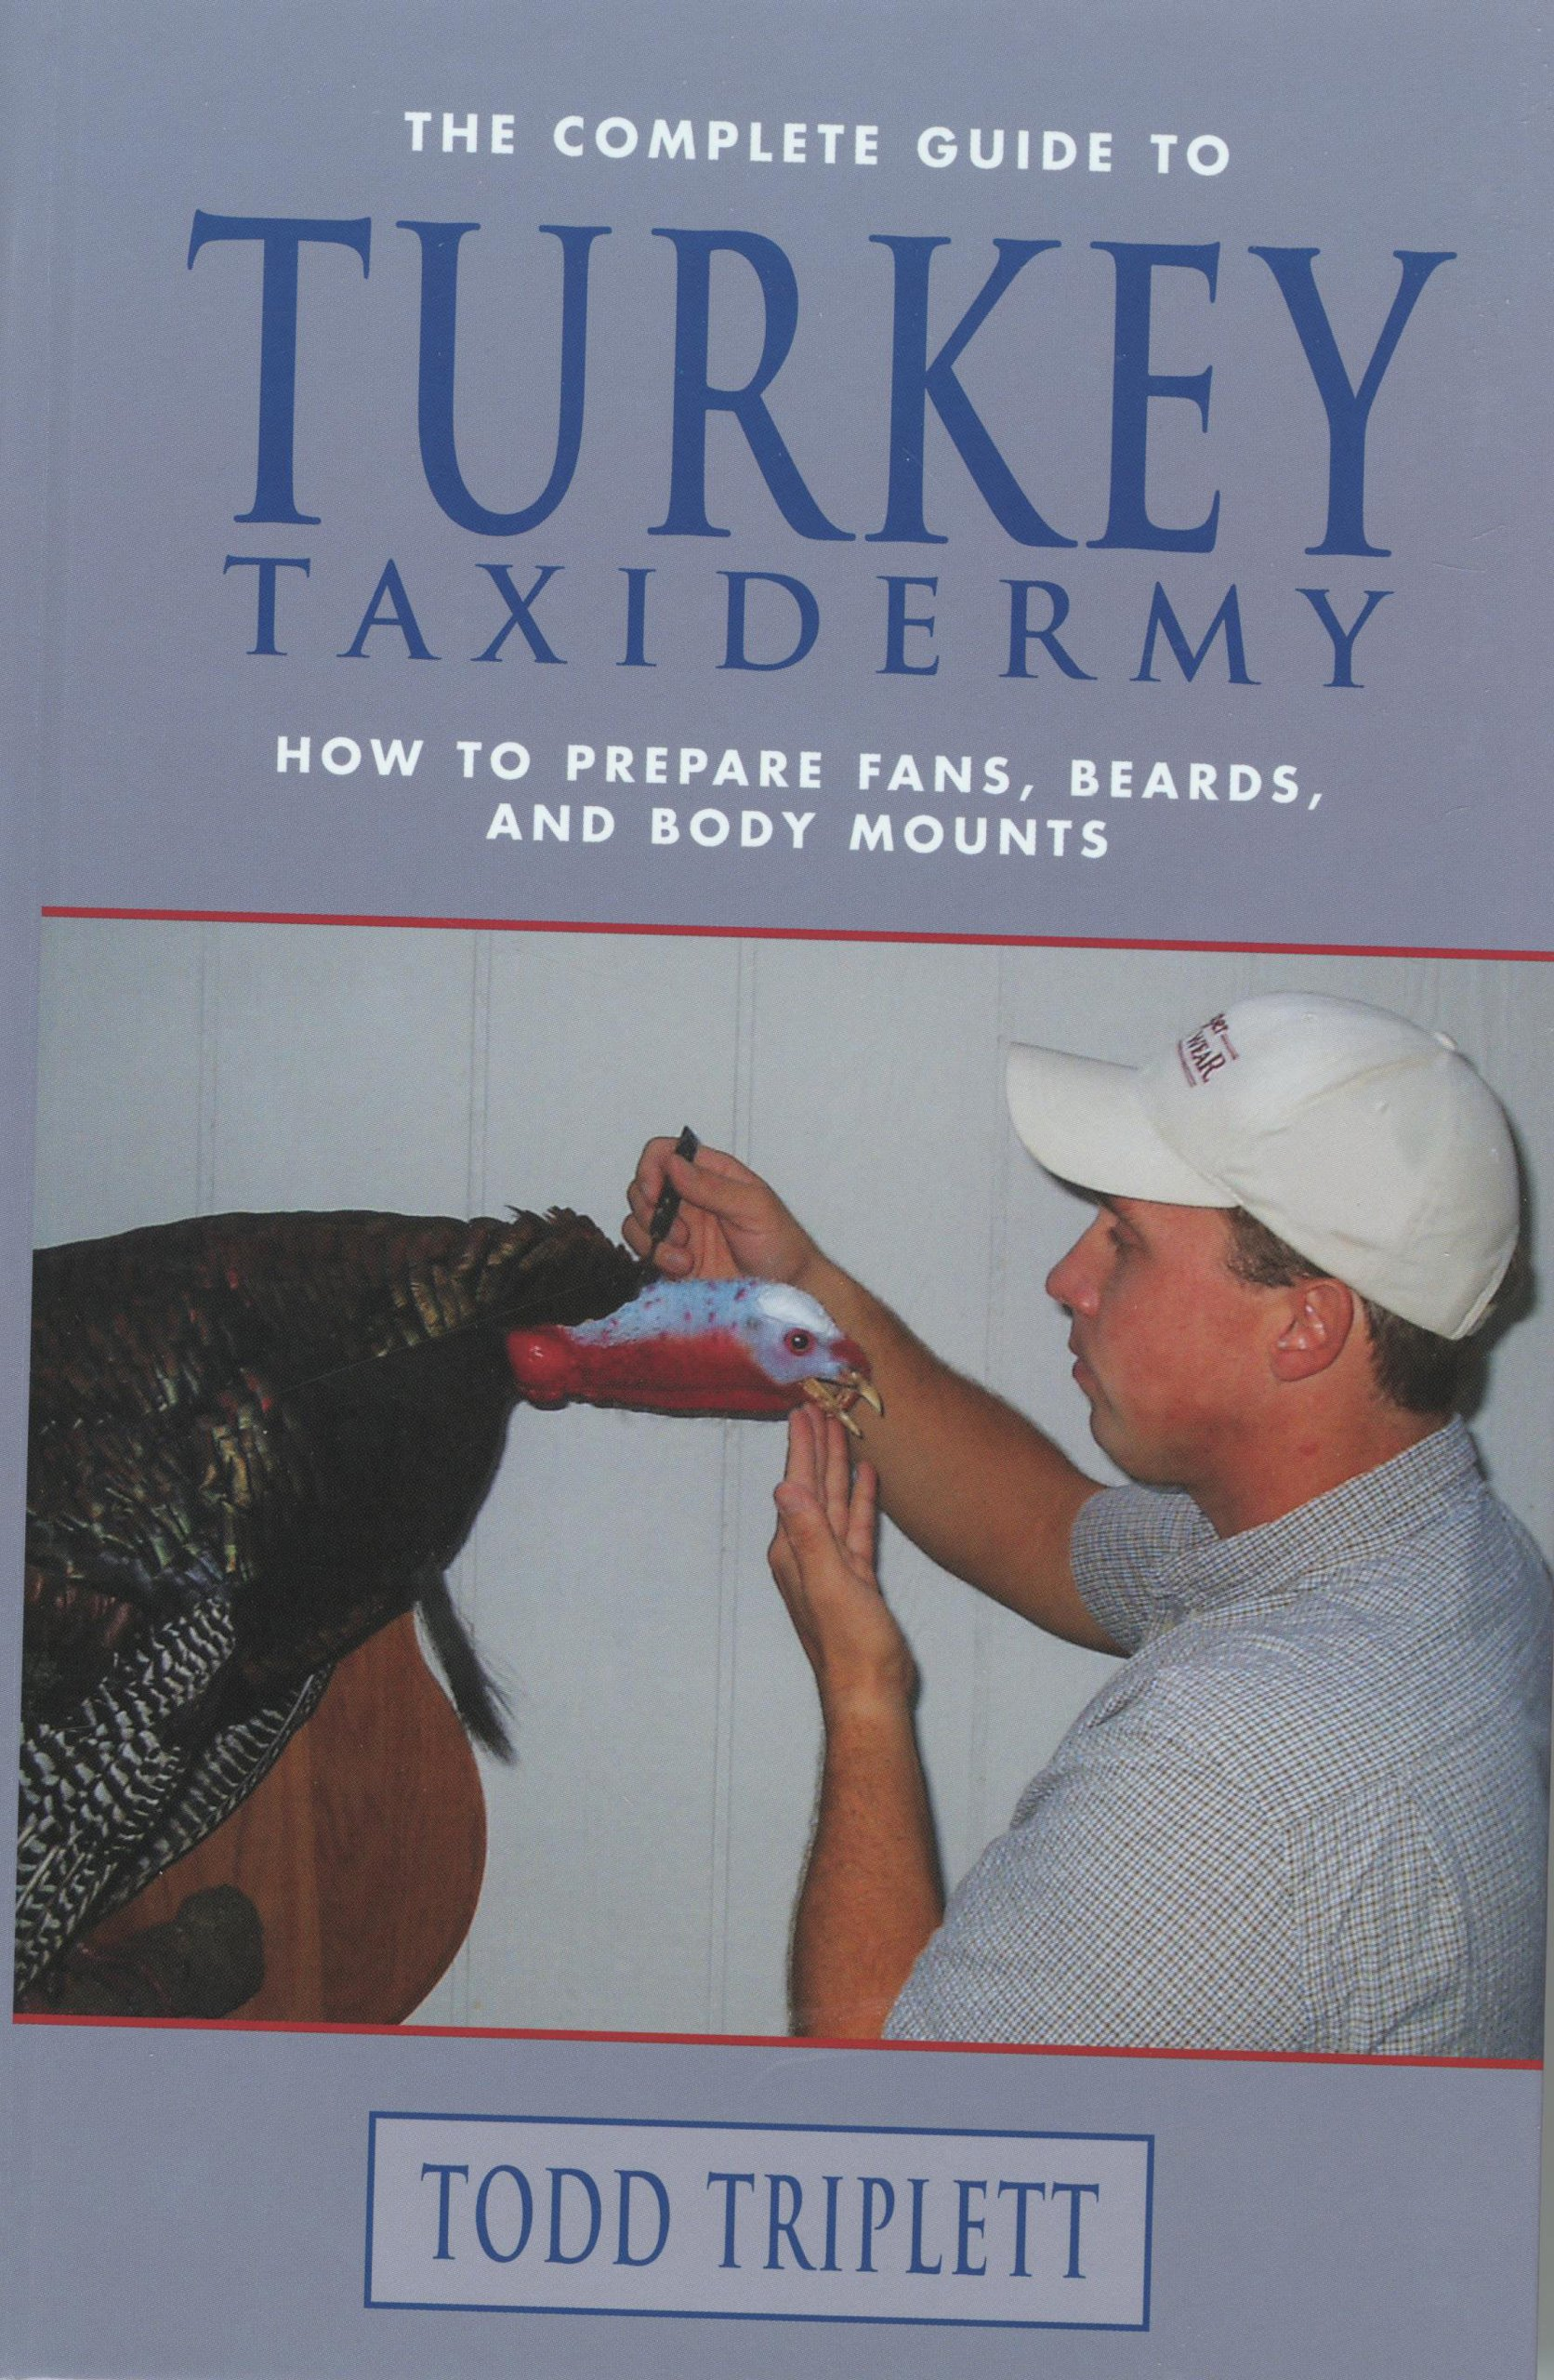 Download The Complete Guide to Turkey Taxidermy: How to Prepare Fans, Beards, and Body Mounts pdf